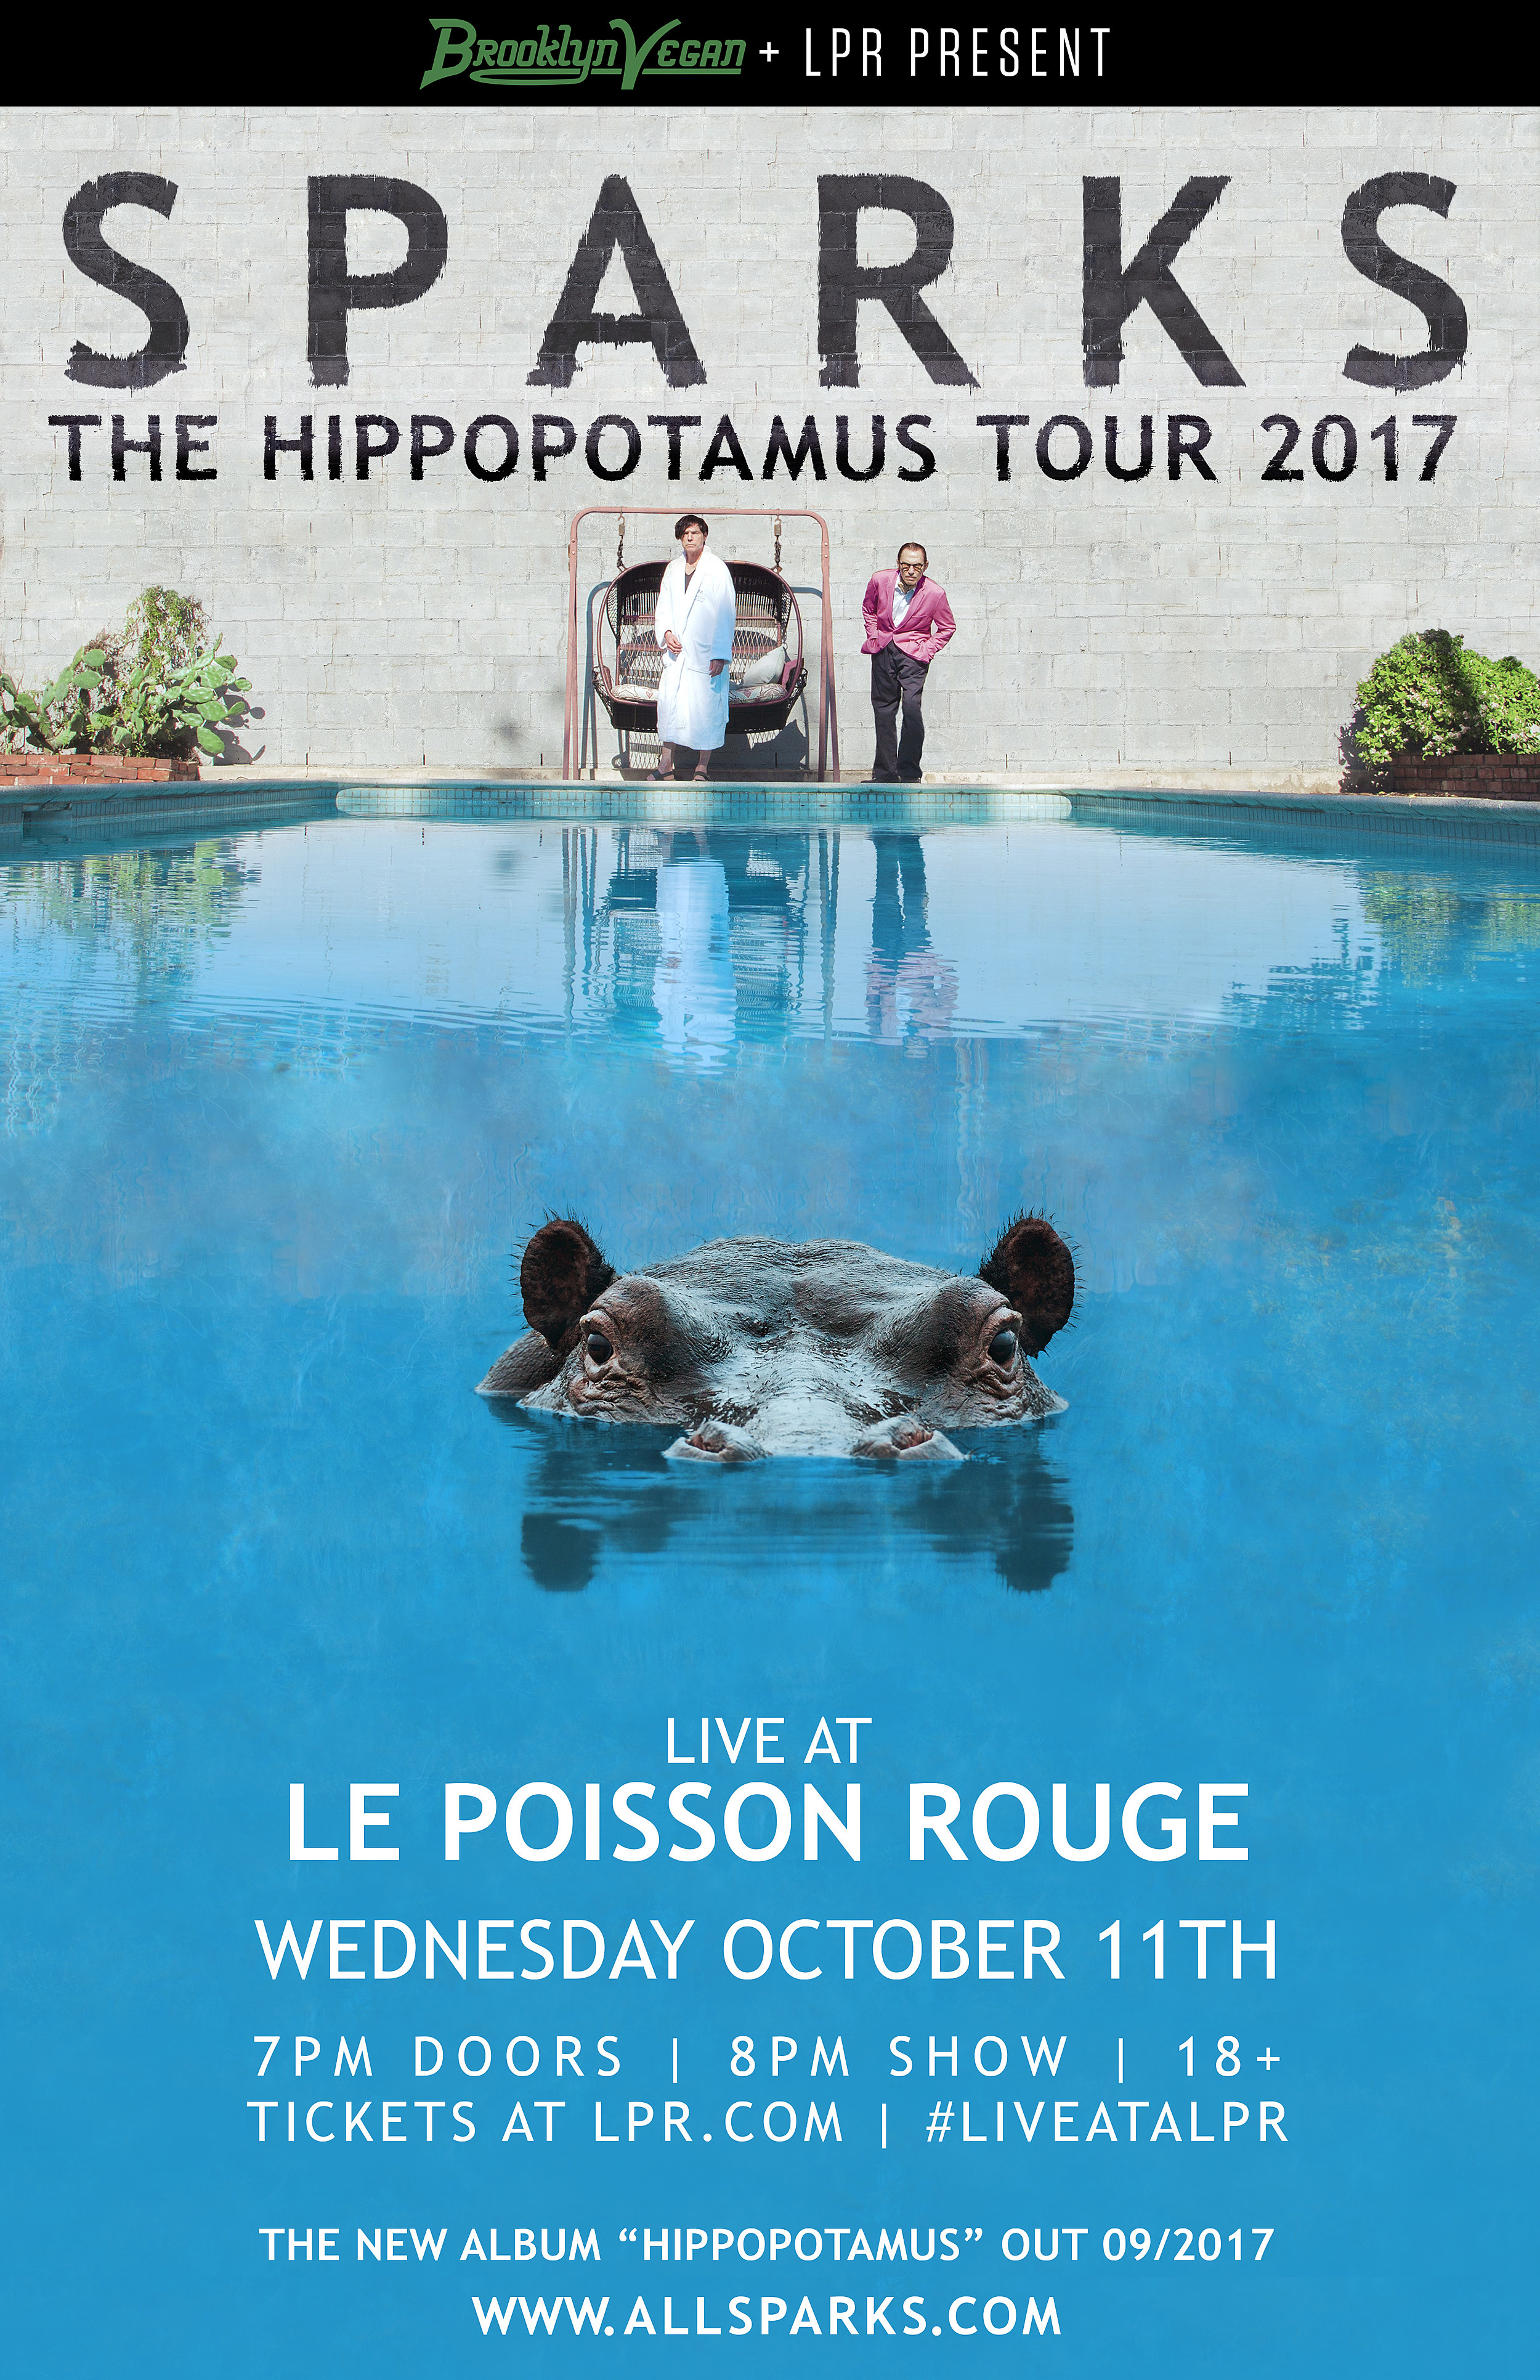 Sparks touring with full band this fall, playing Le Poisson Rouge ...